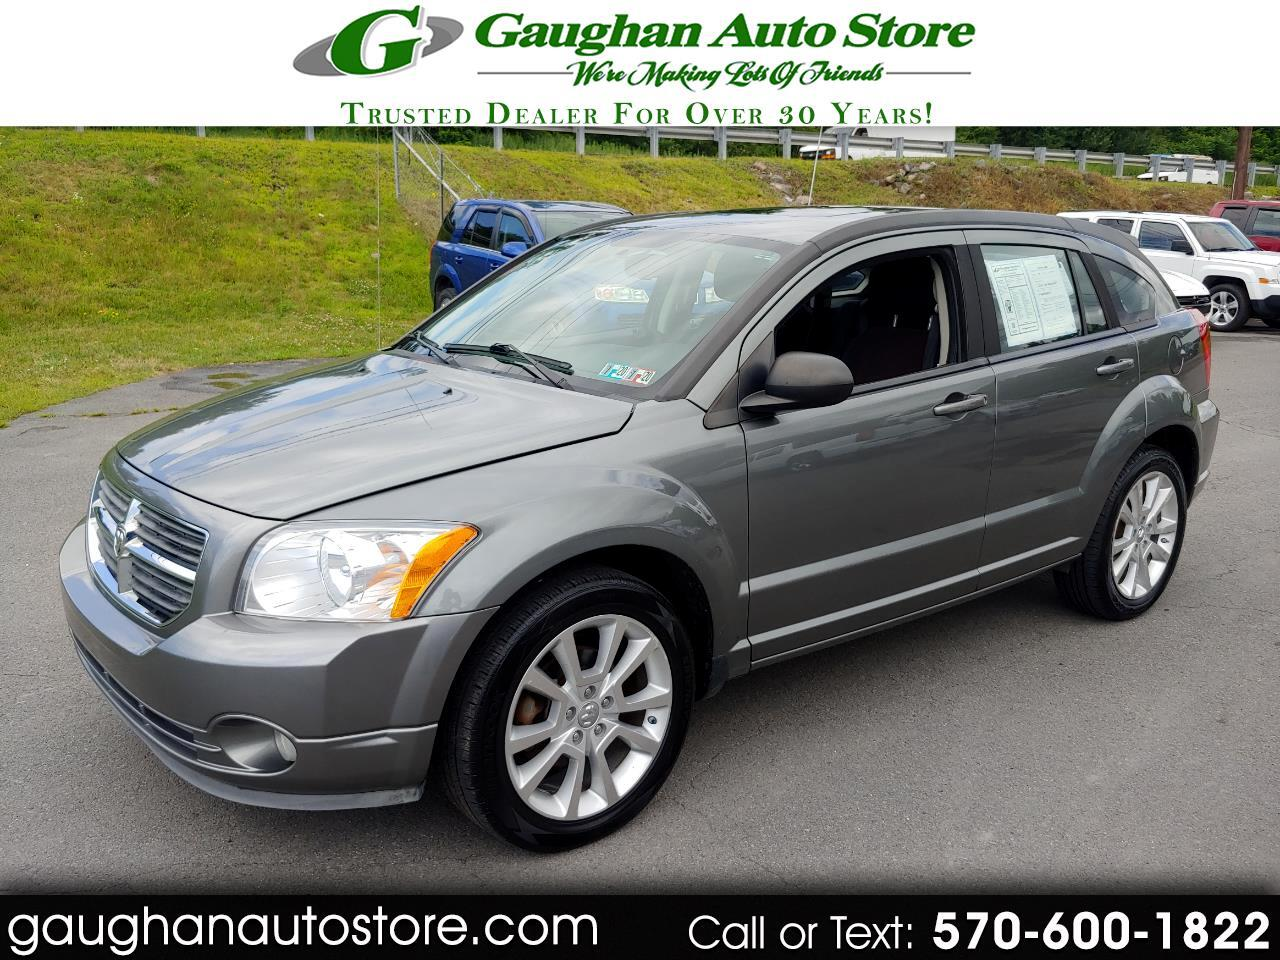 2012 Dodge Caliber 4dr HB SXT Plus